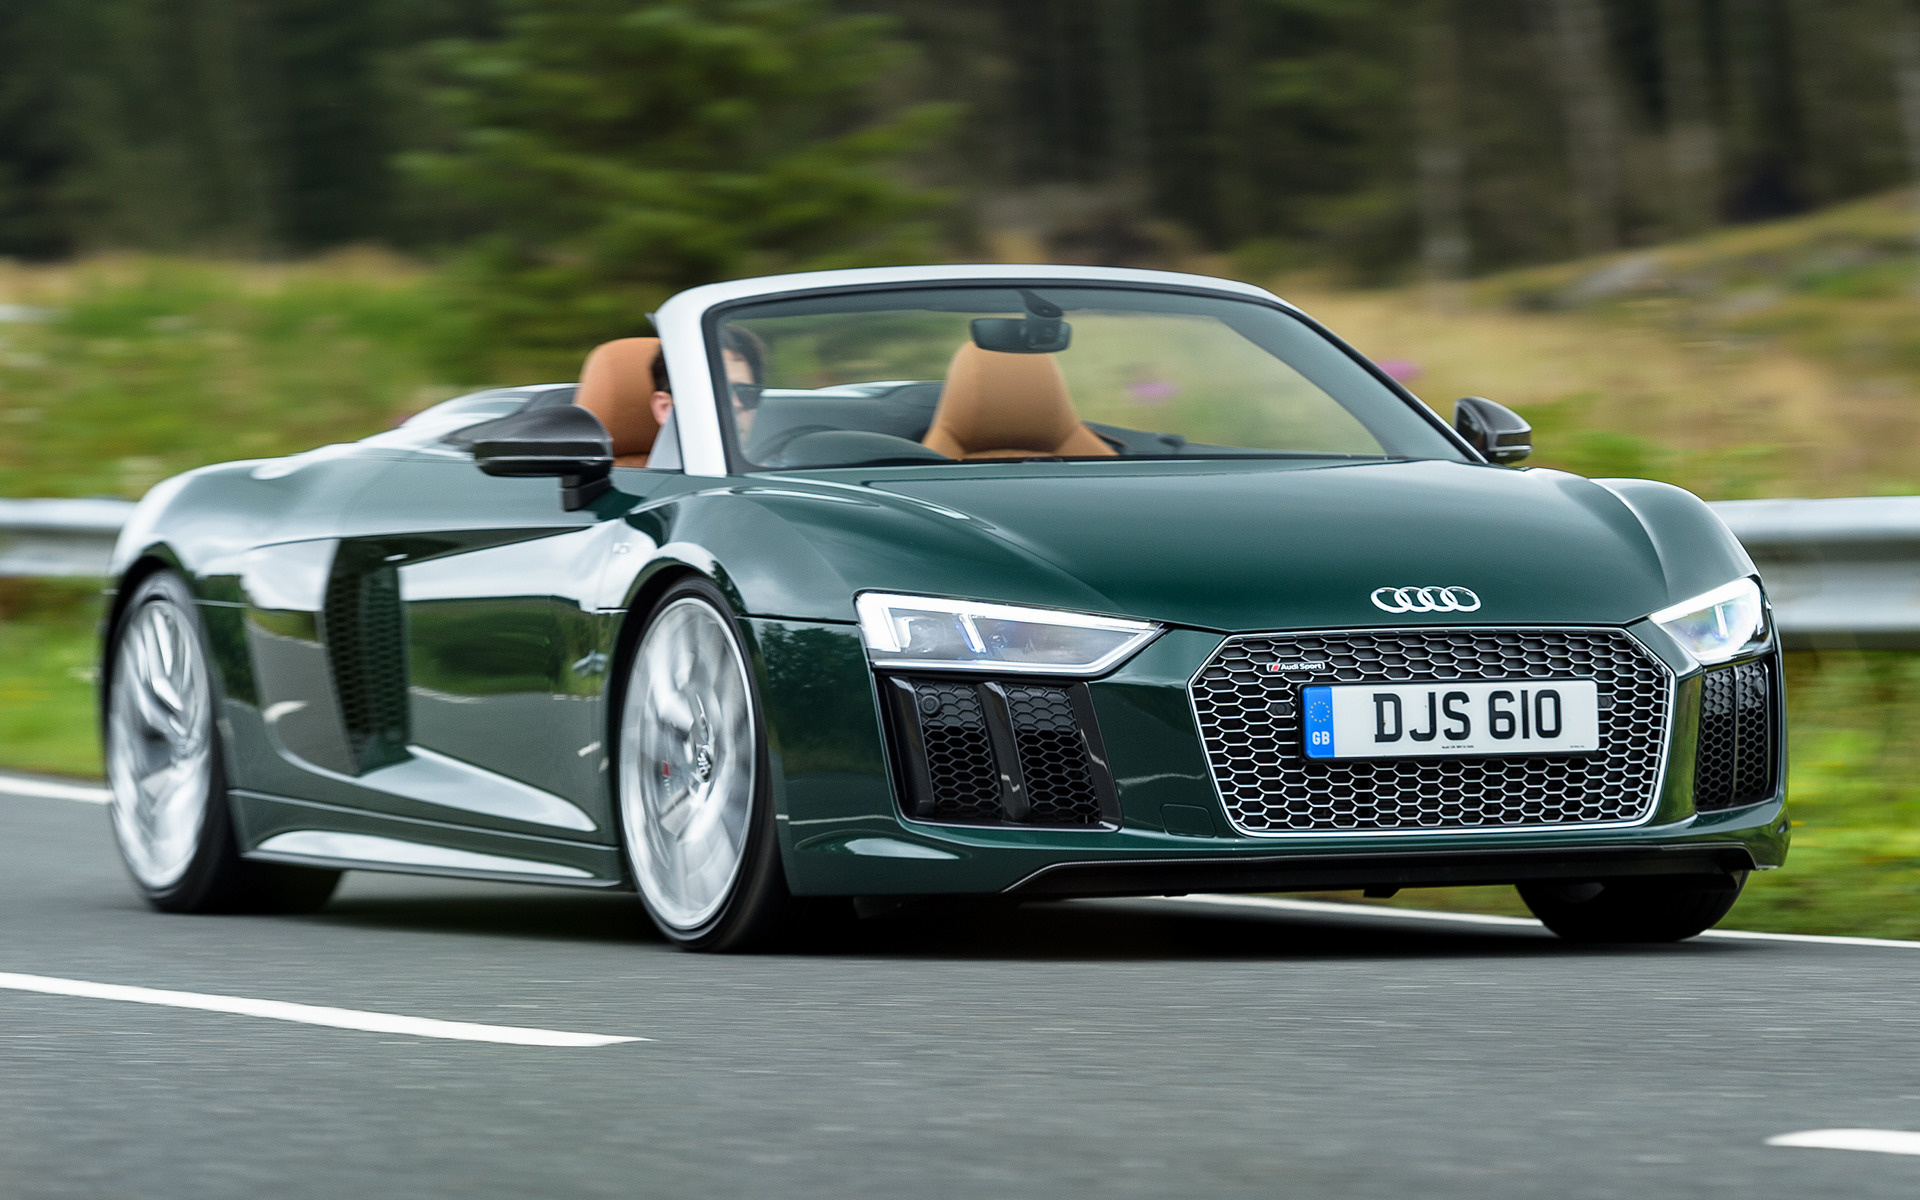 Porsche Parts Uk >> 2017 Audi R8 Spyder Plus (UK) - Wallpapers and HD Images ...